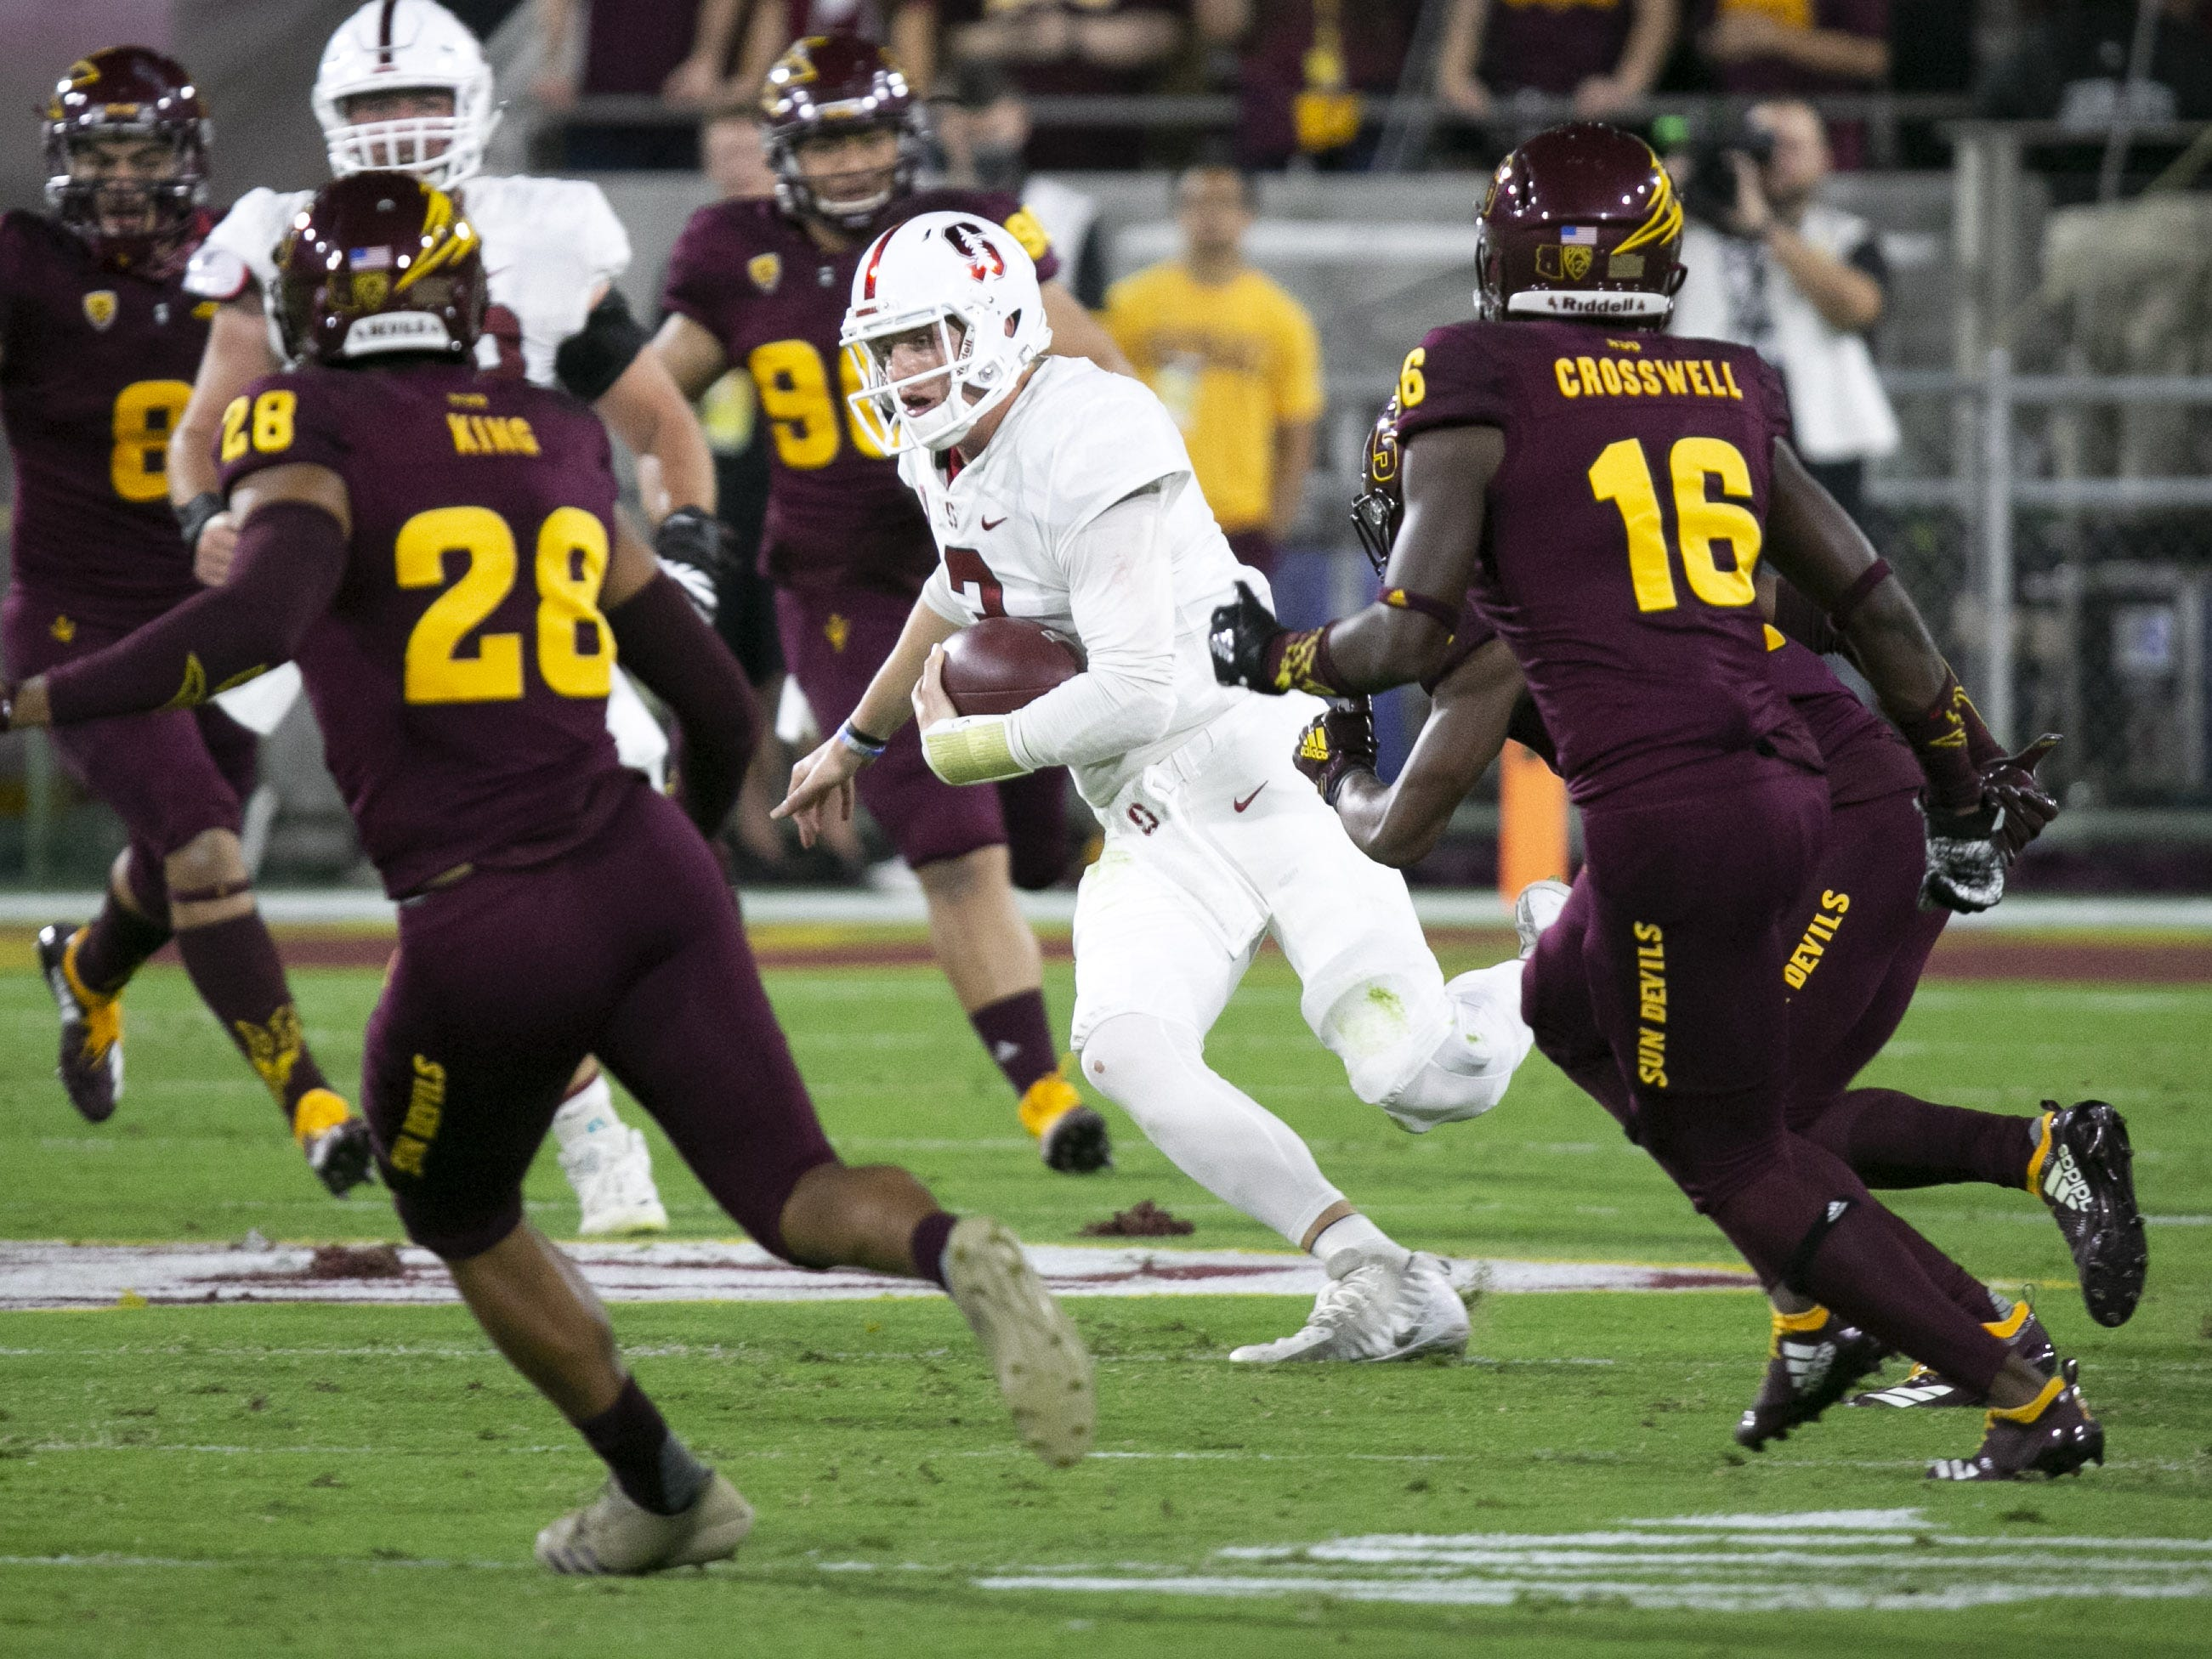 Stanford quarterback K.J. Costello carries the ball against the ASU defense during the first quarter of the Pac-12 college football game at Sun Devil Stadium in Tempe on October 18, 2018.